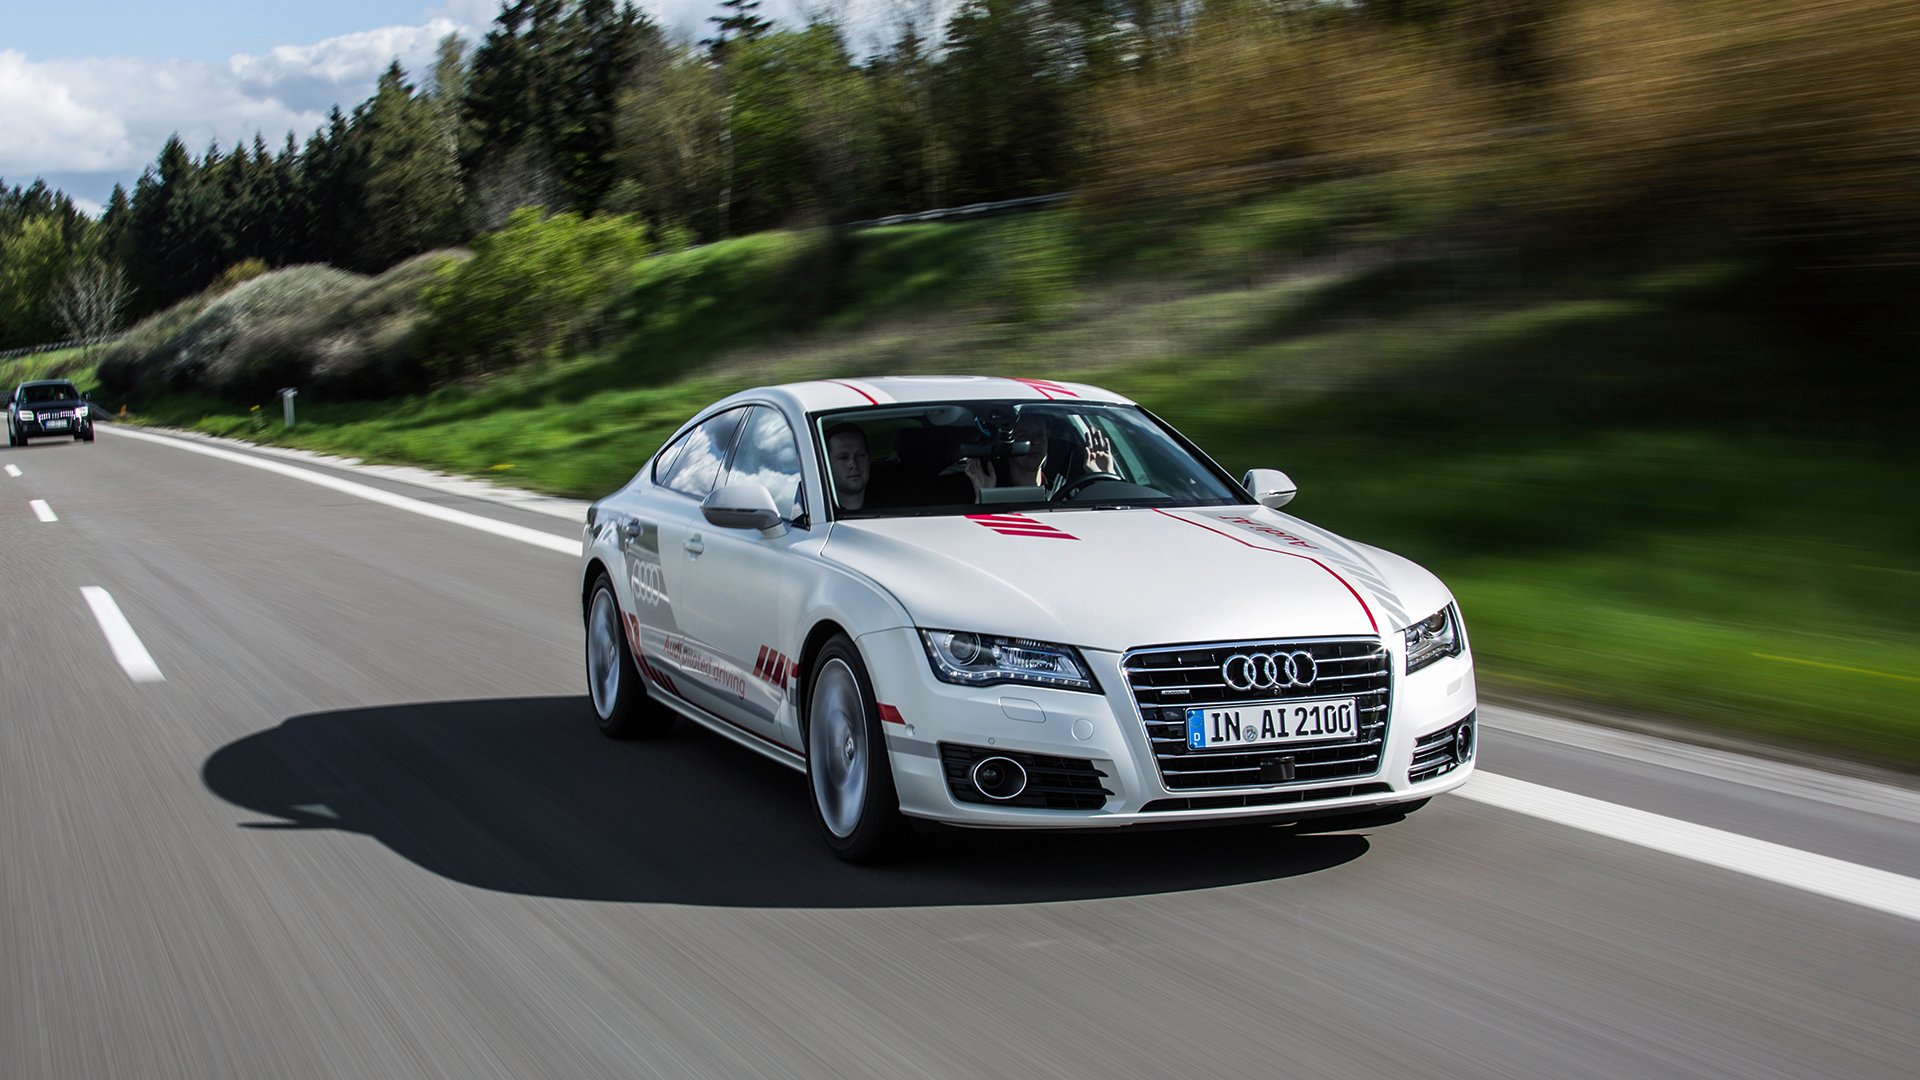 "Autobahn A9 Audi Research Car ""Jack"" Shows Social petence"